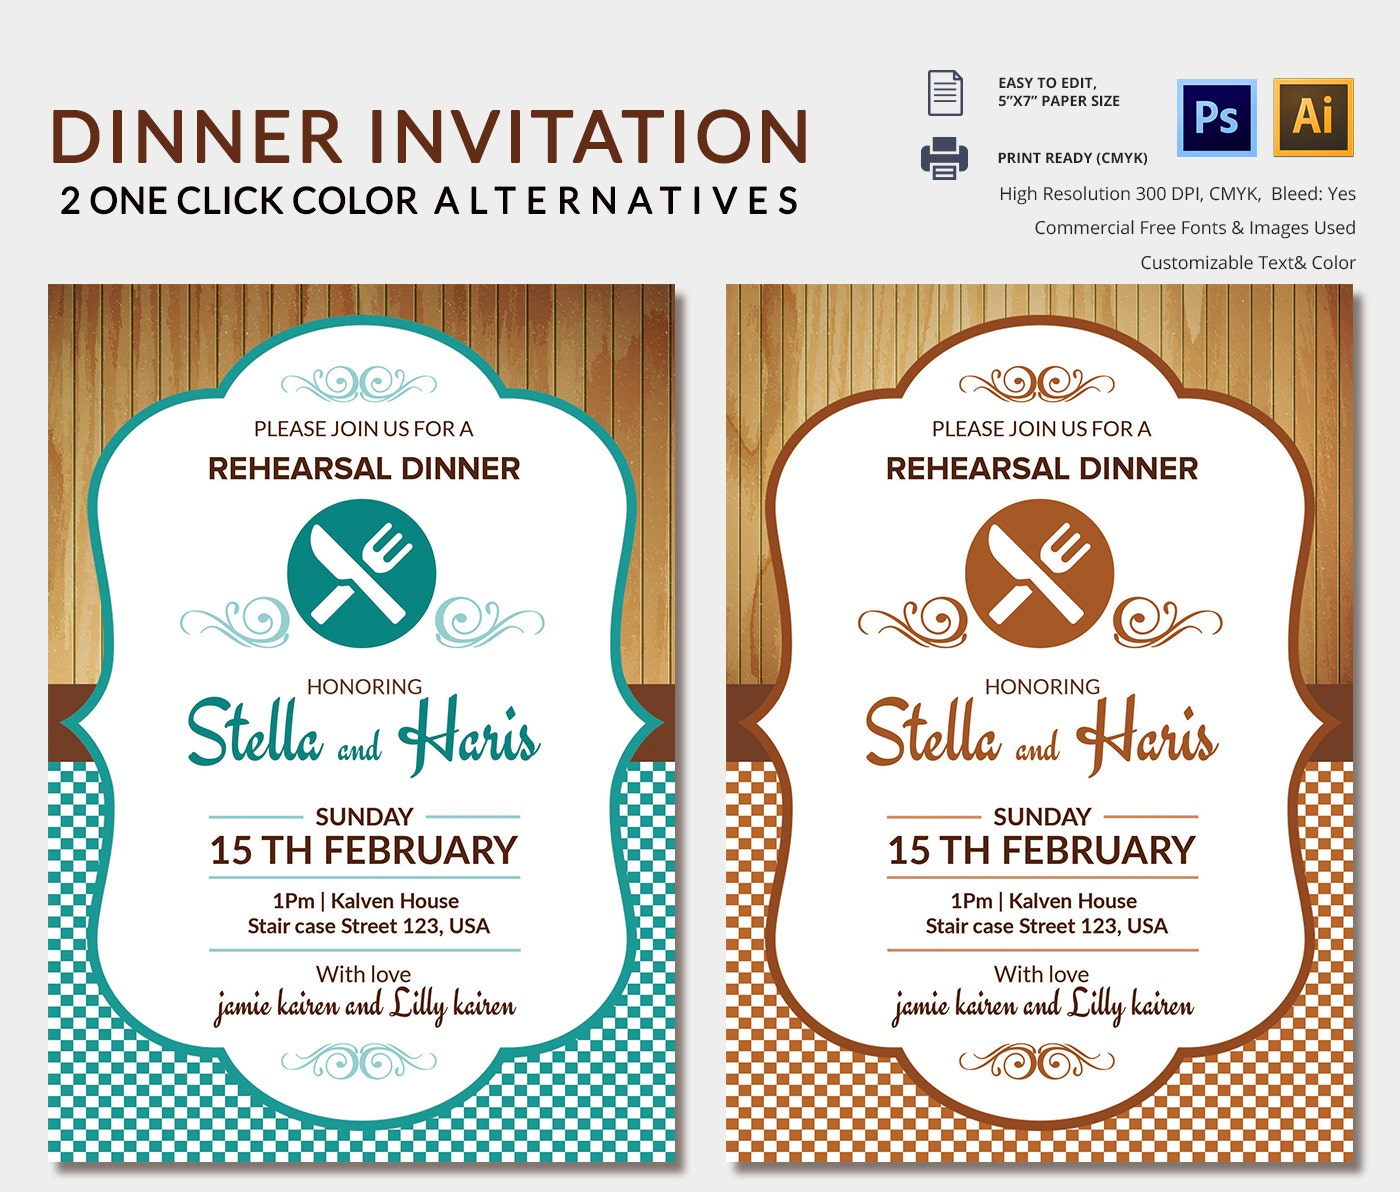 Lunch Invitation Template 25 Free PSD PDF Documents Download – Free Dinner Invitation